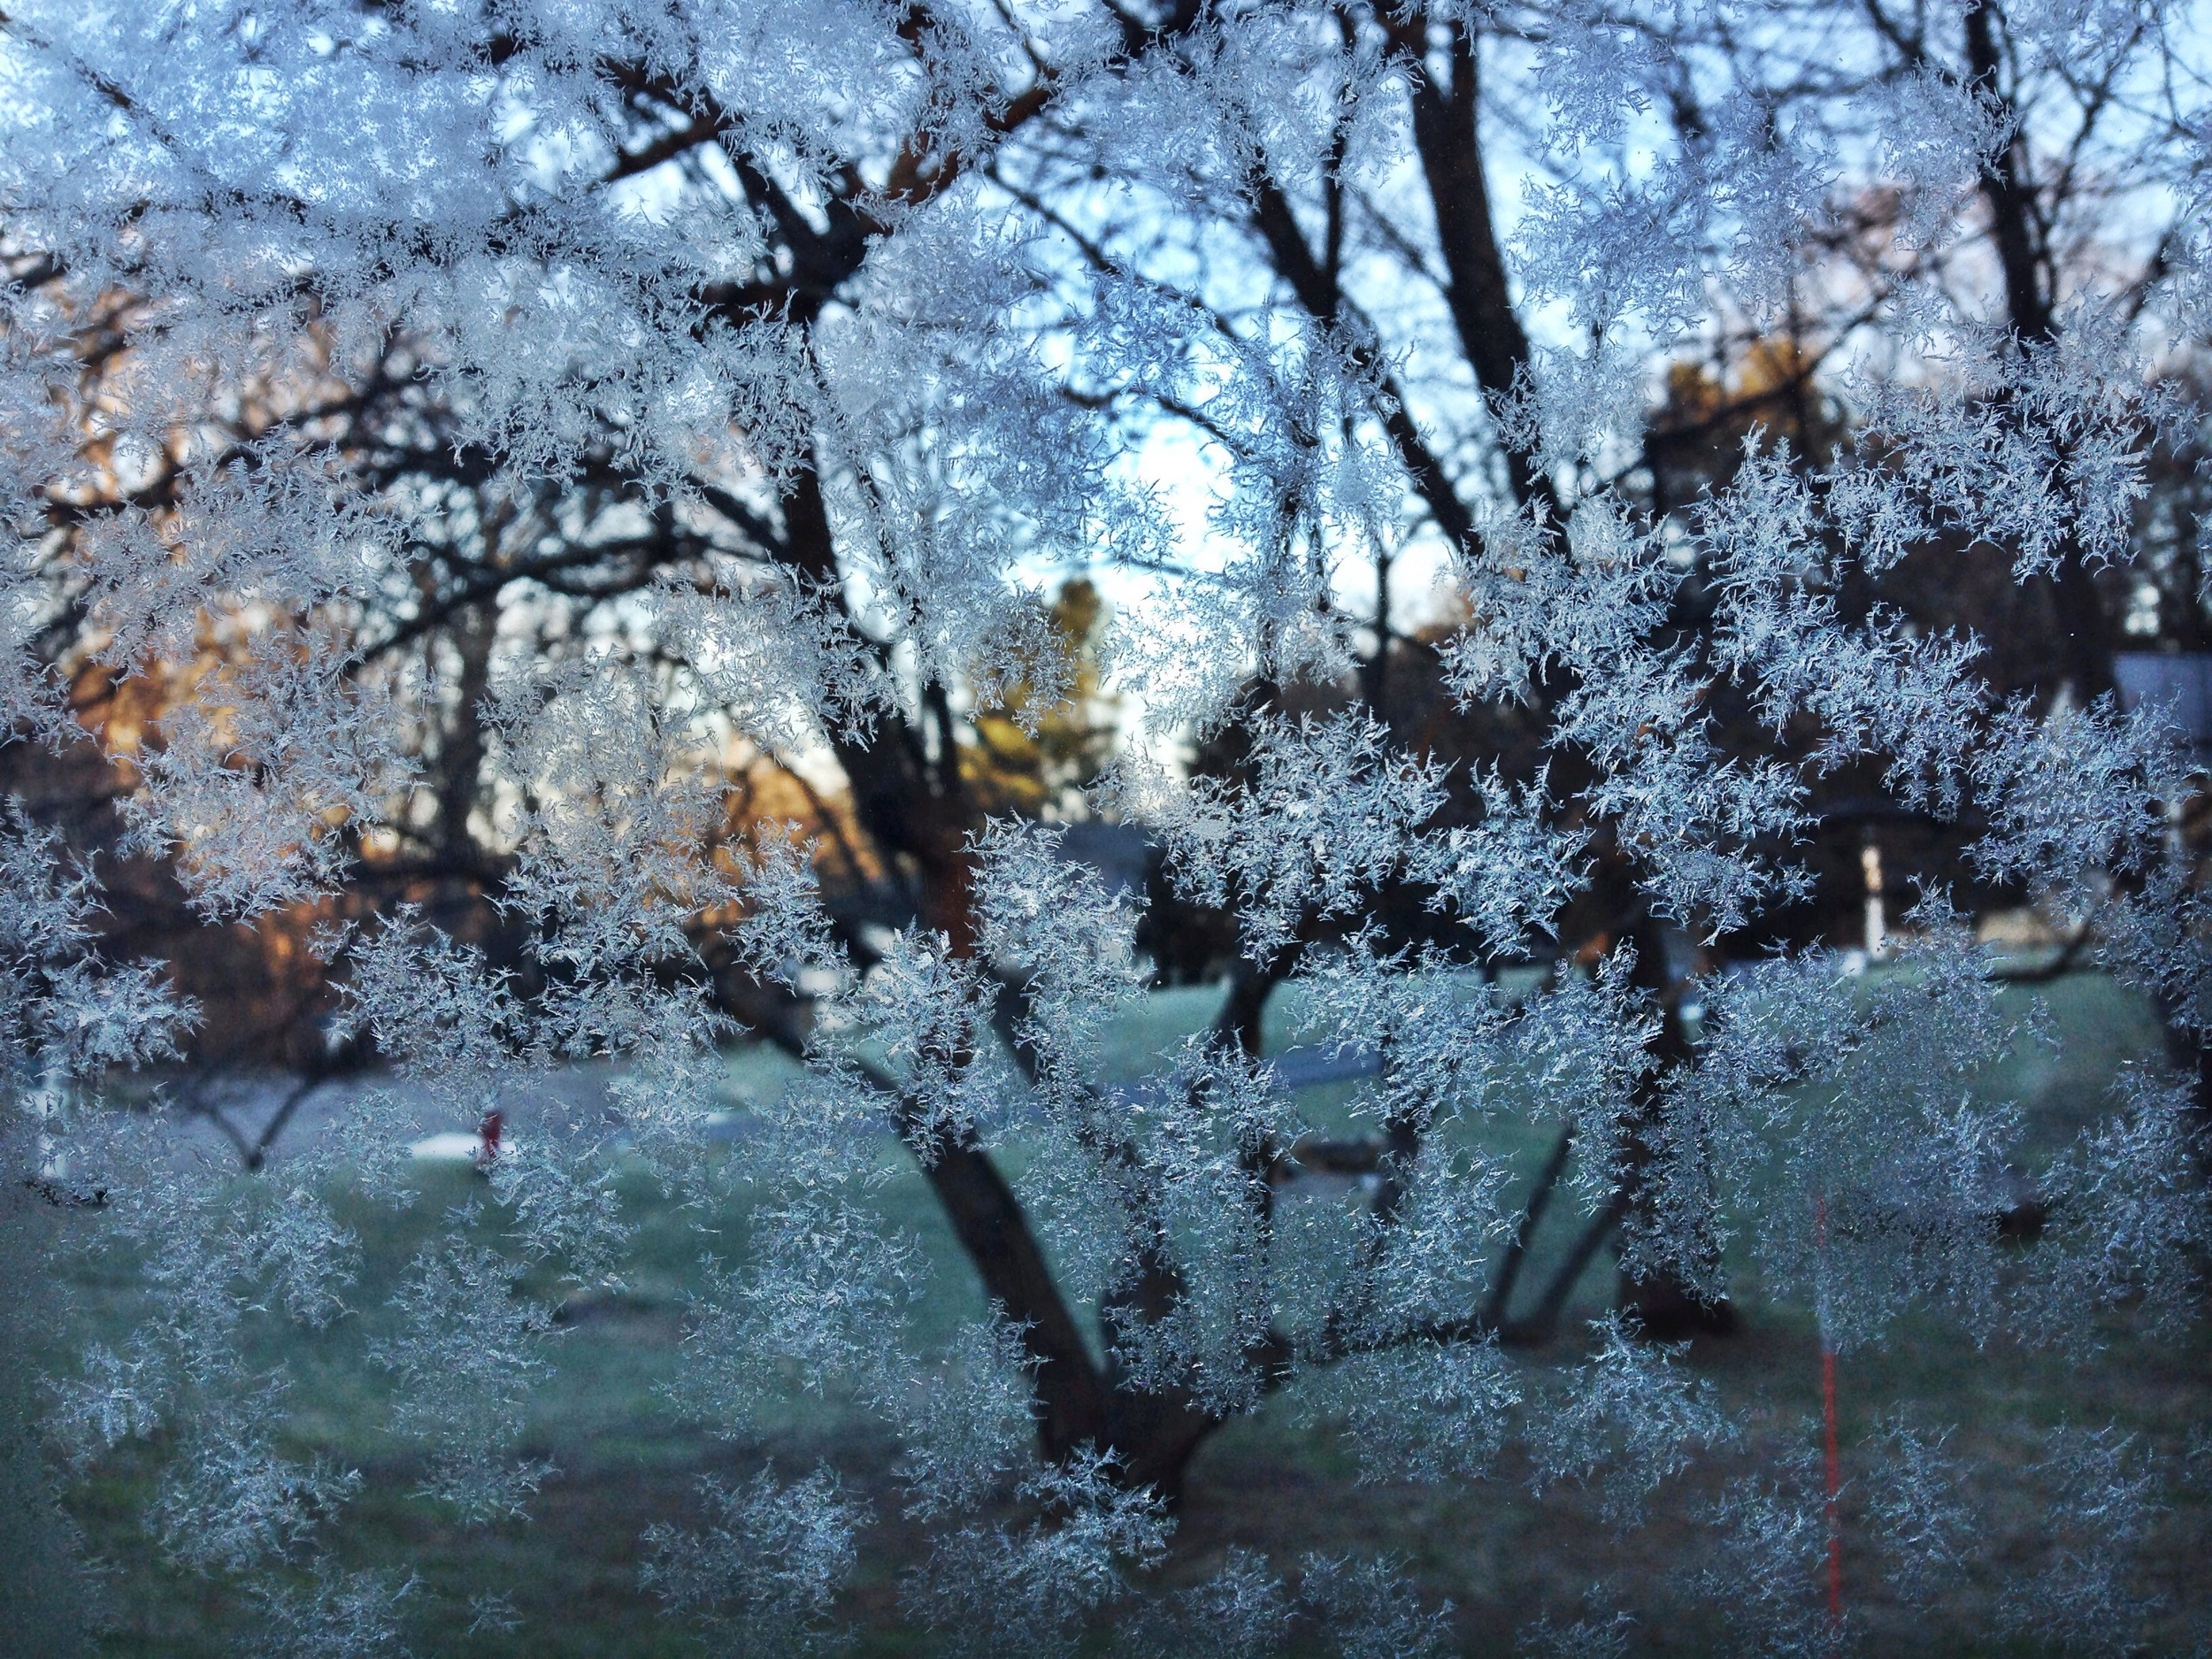 {Frost forming on my car windows}